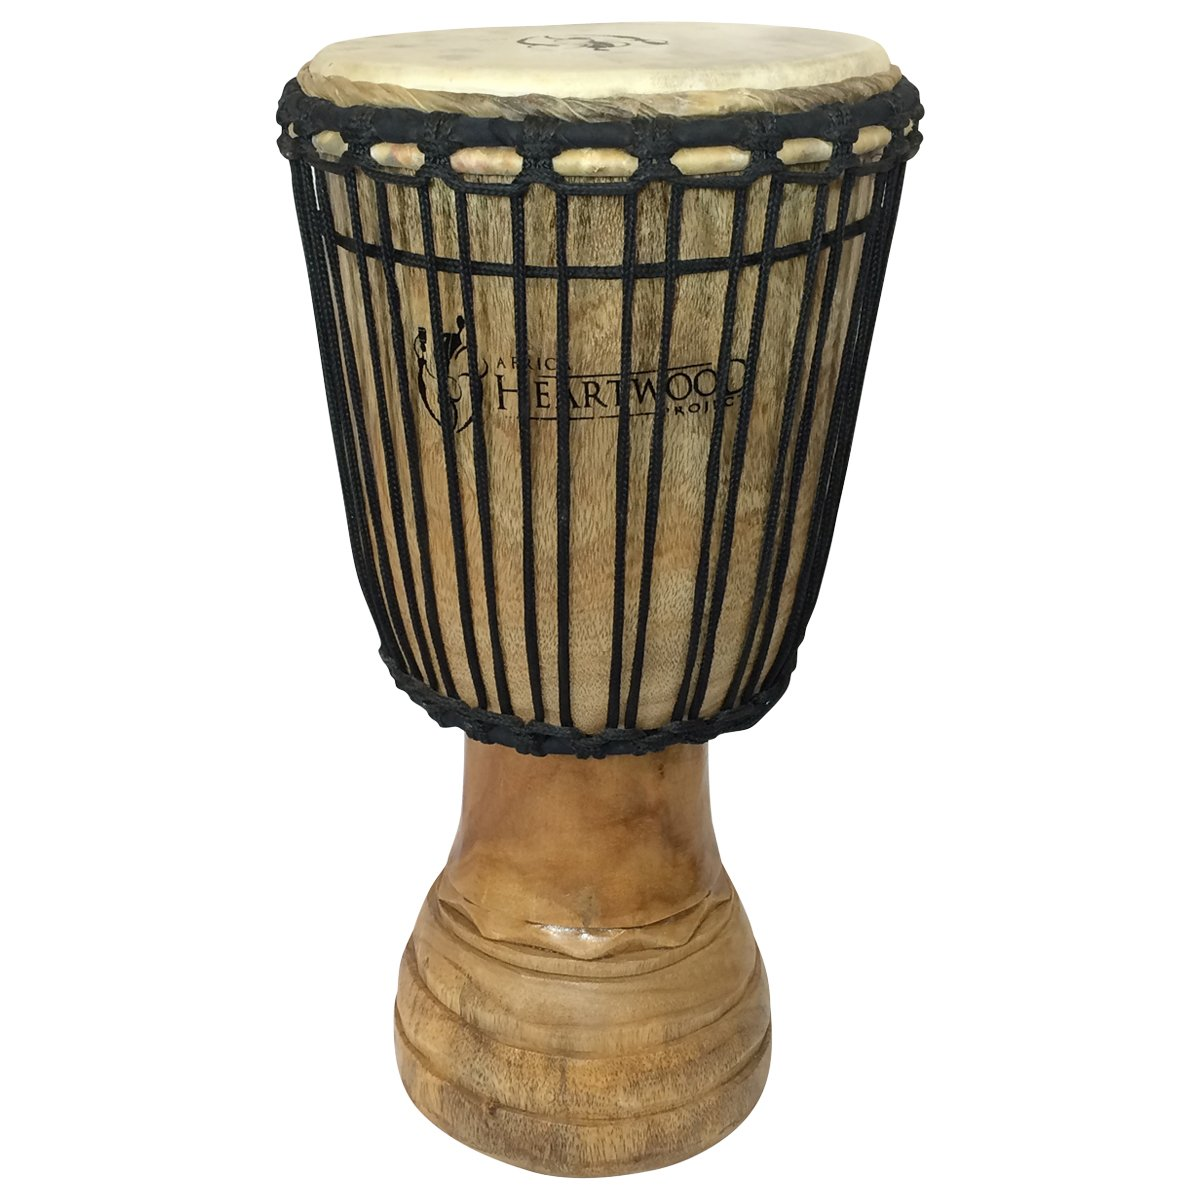 Hand-carved Classical Heartwood Djembe Drum from Africa - 10''x20''